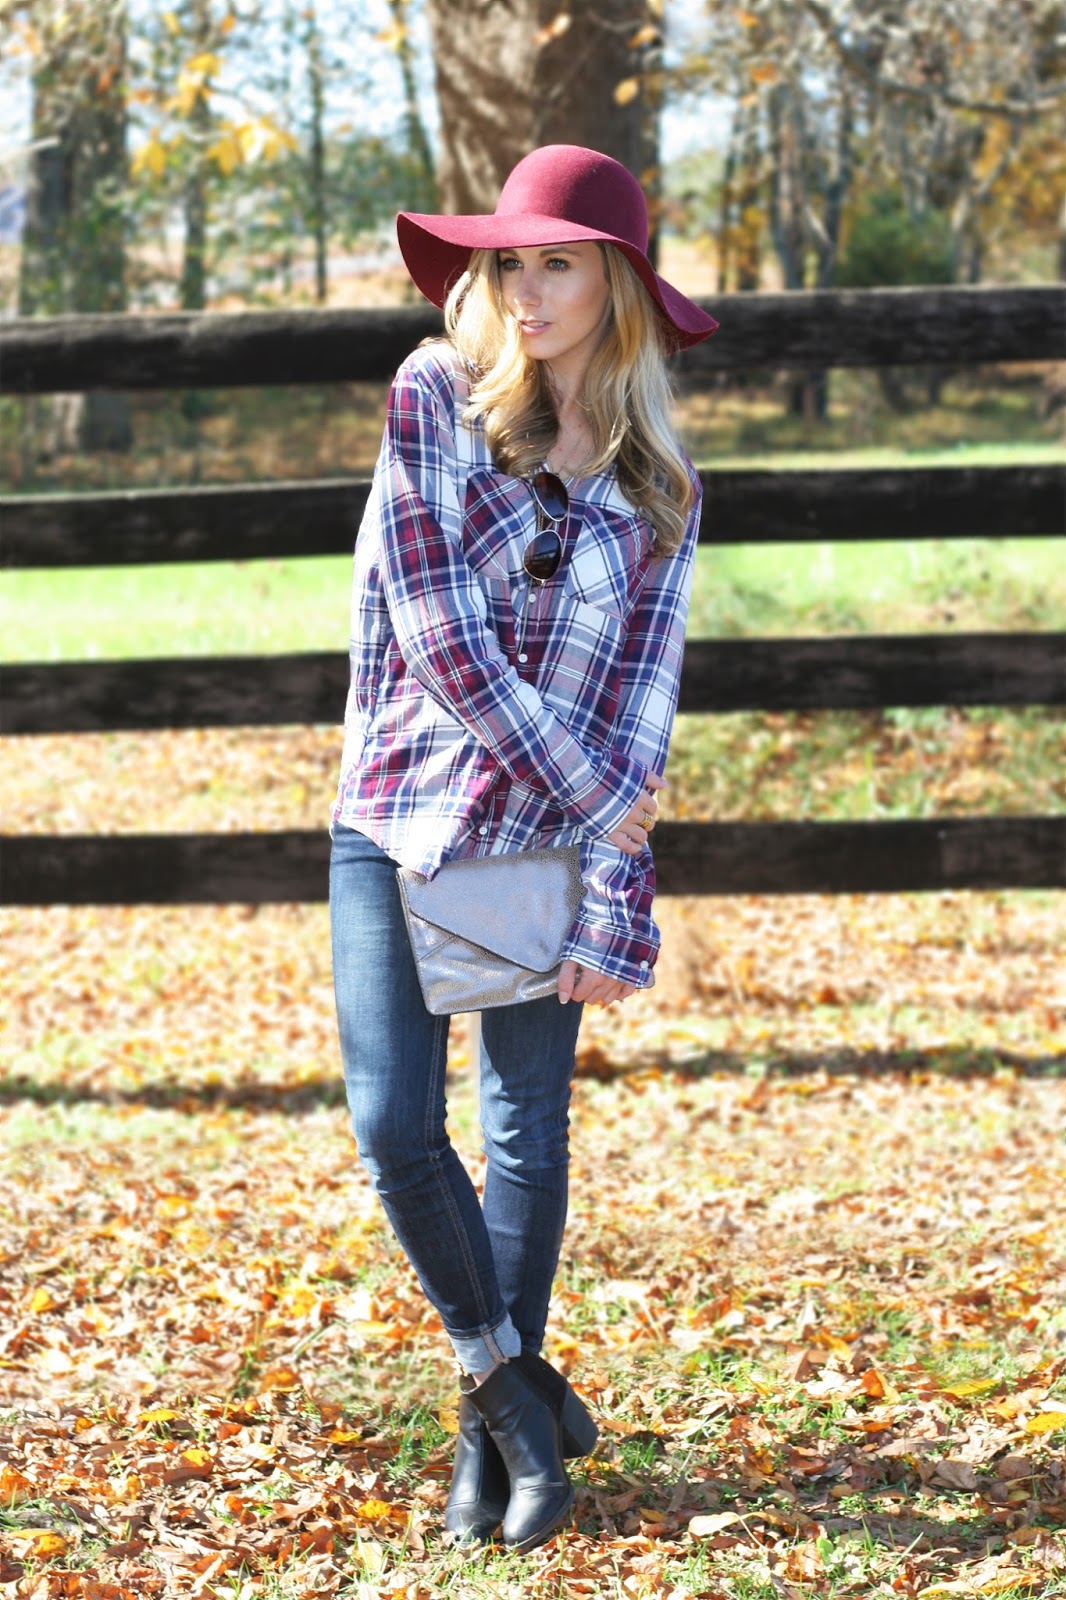 Casual-fall-outfit-with-floppy-hat-and-plaid-flannel